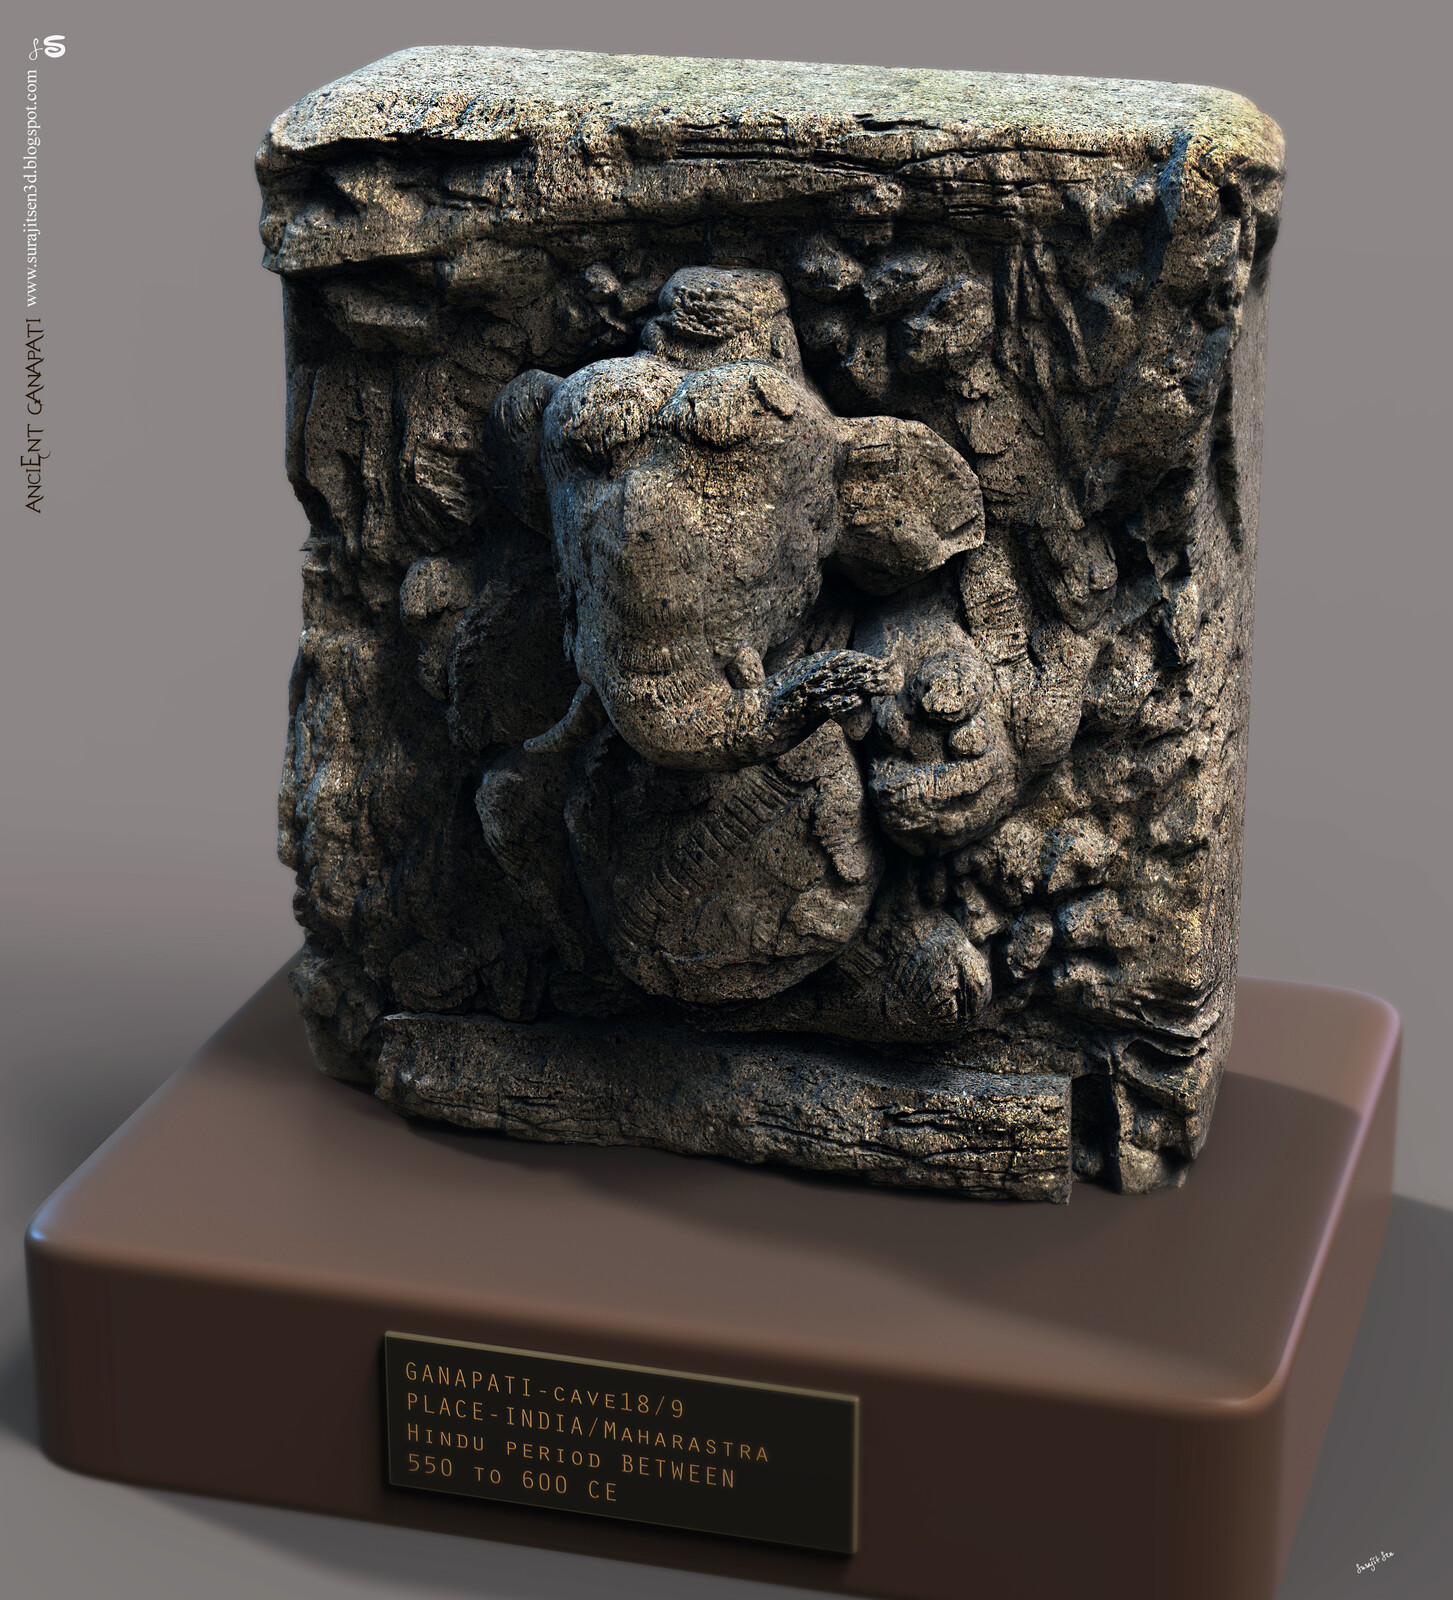 #ancientganeshsculpture Wish to share one of my Digital Sculptures in new look.... Ancient Ganesh Sculpture. Continuing to experiment with brushes… I am always inspired by Ancient Indian Art of Sculpting. Though lot of relics are broken due to huge time t